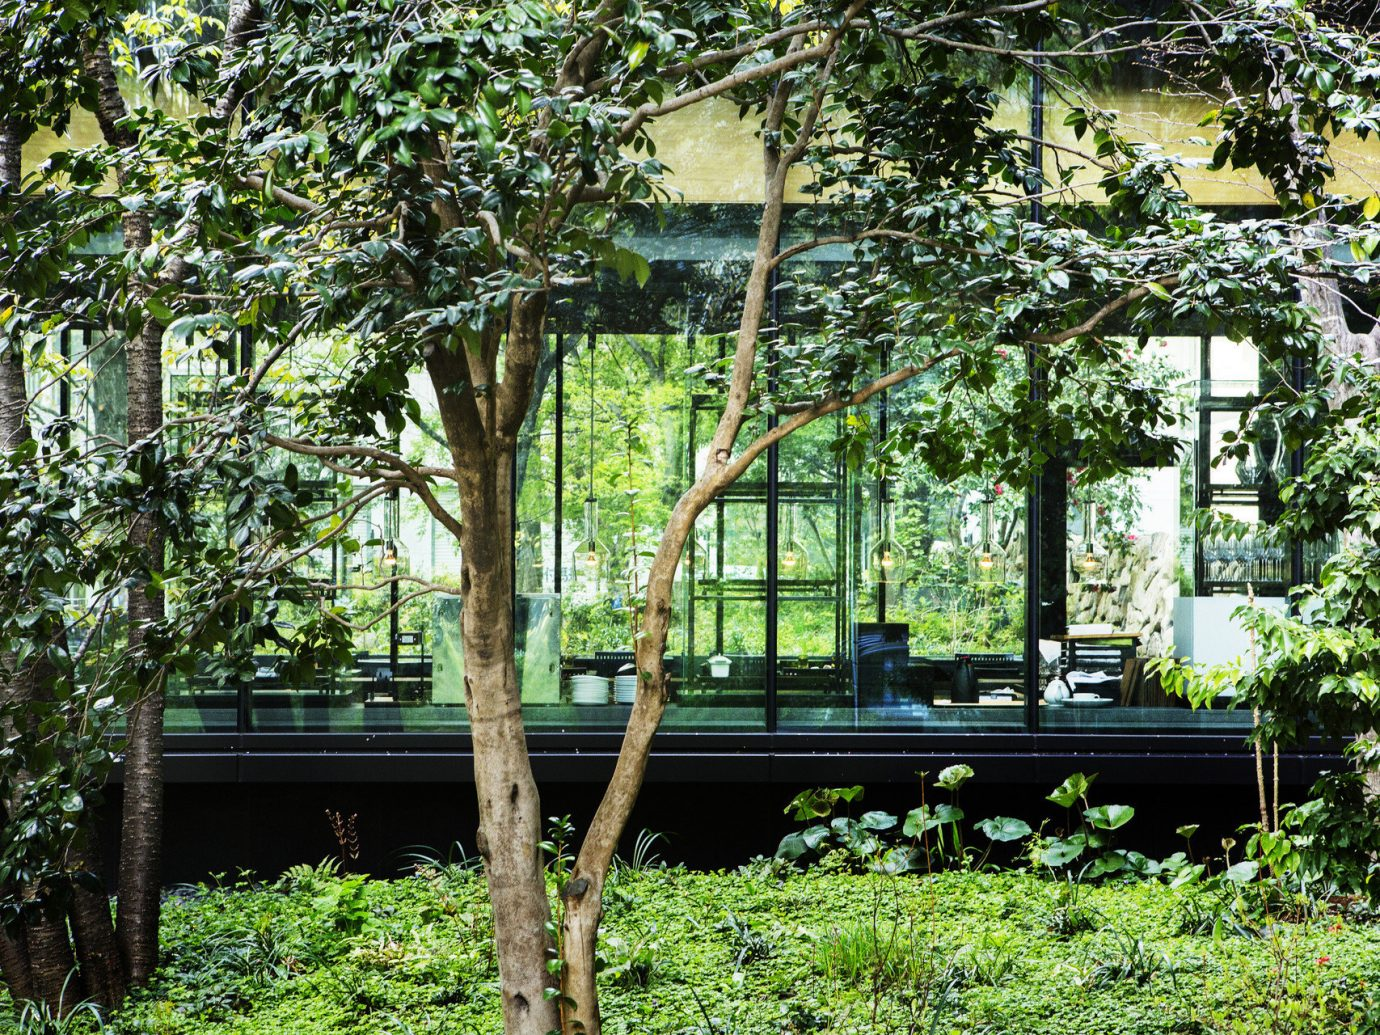 Hotels Japan Tokyo tree outdoor park flora botany Garden plant house flower woody plant woodland estate backyard Jungle yard cottage botanical garden outdoor structure area wooded